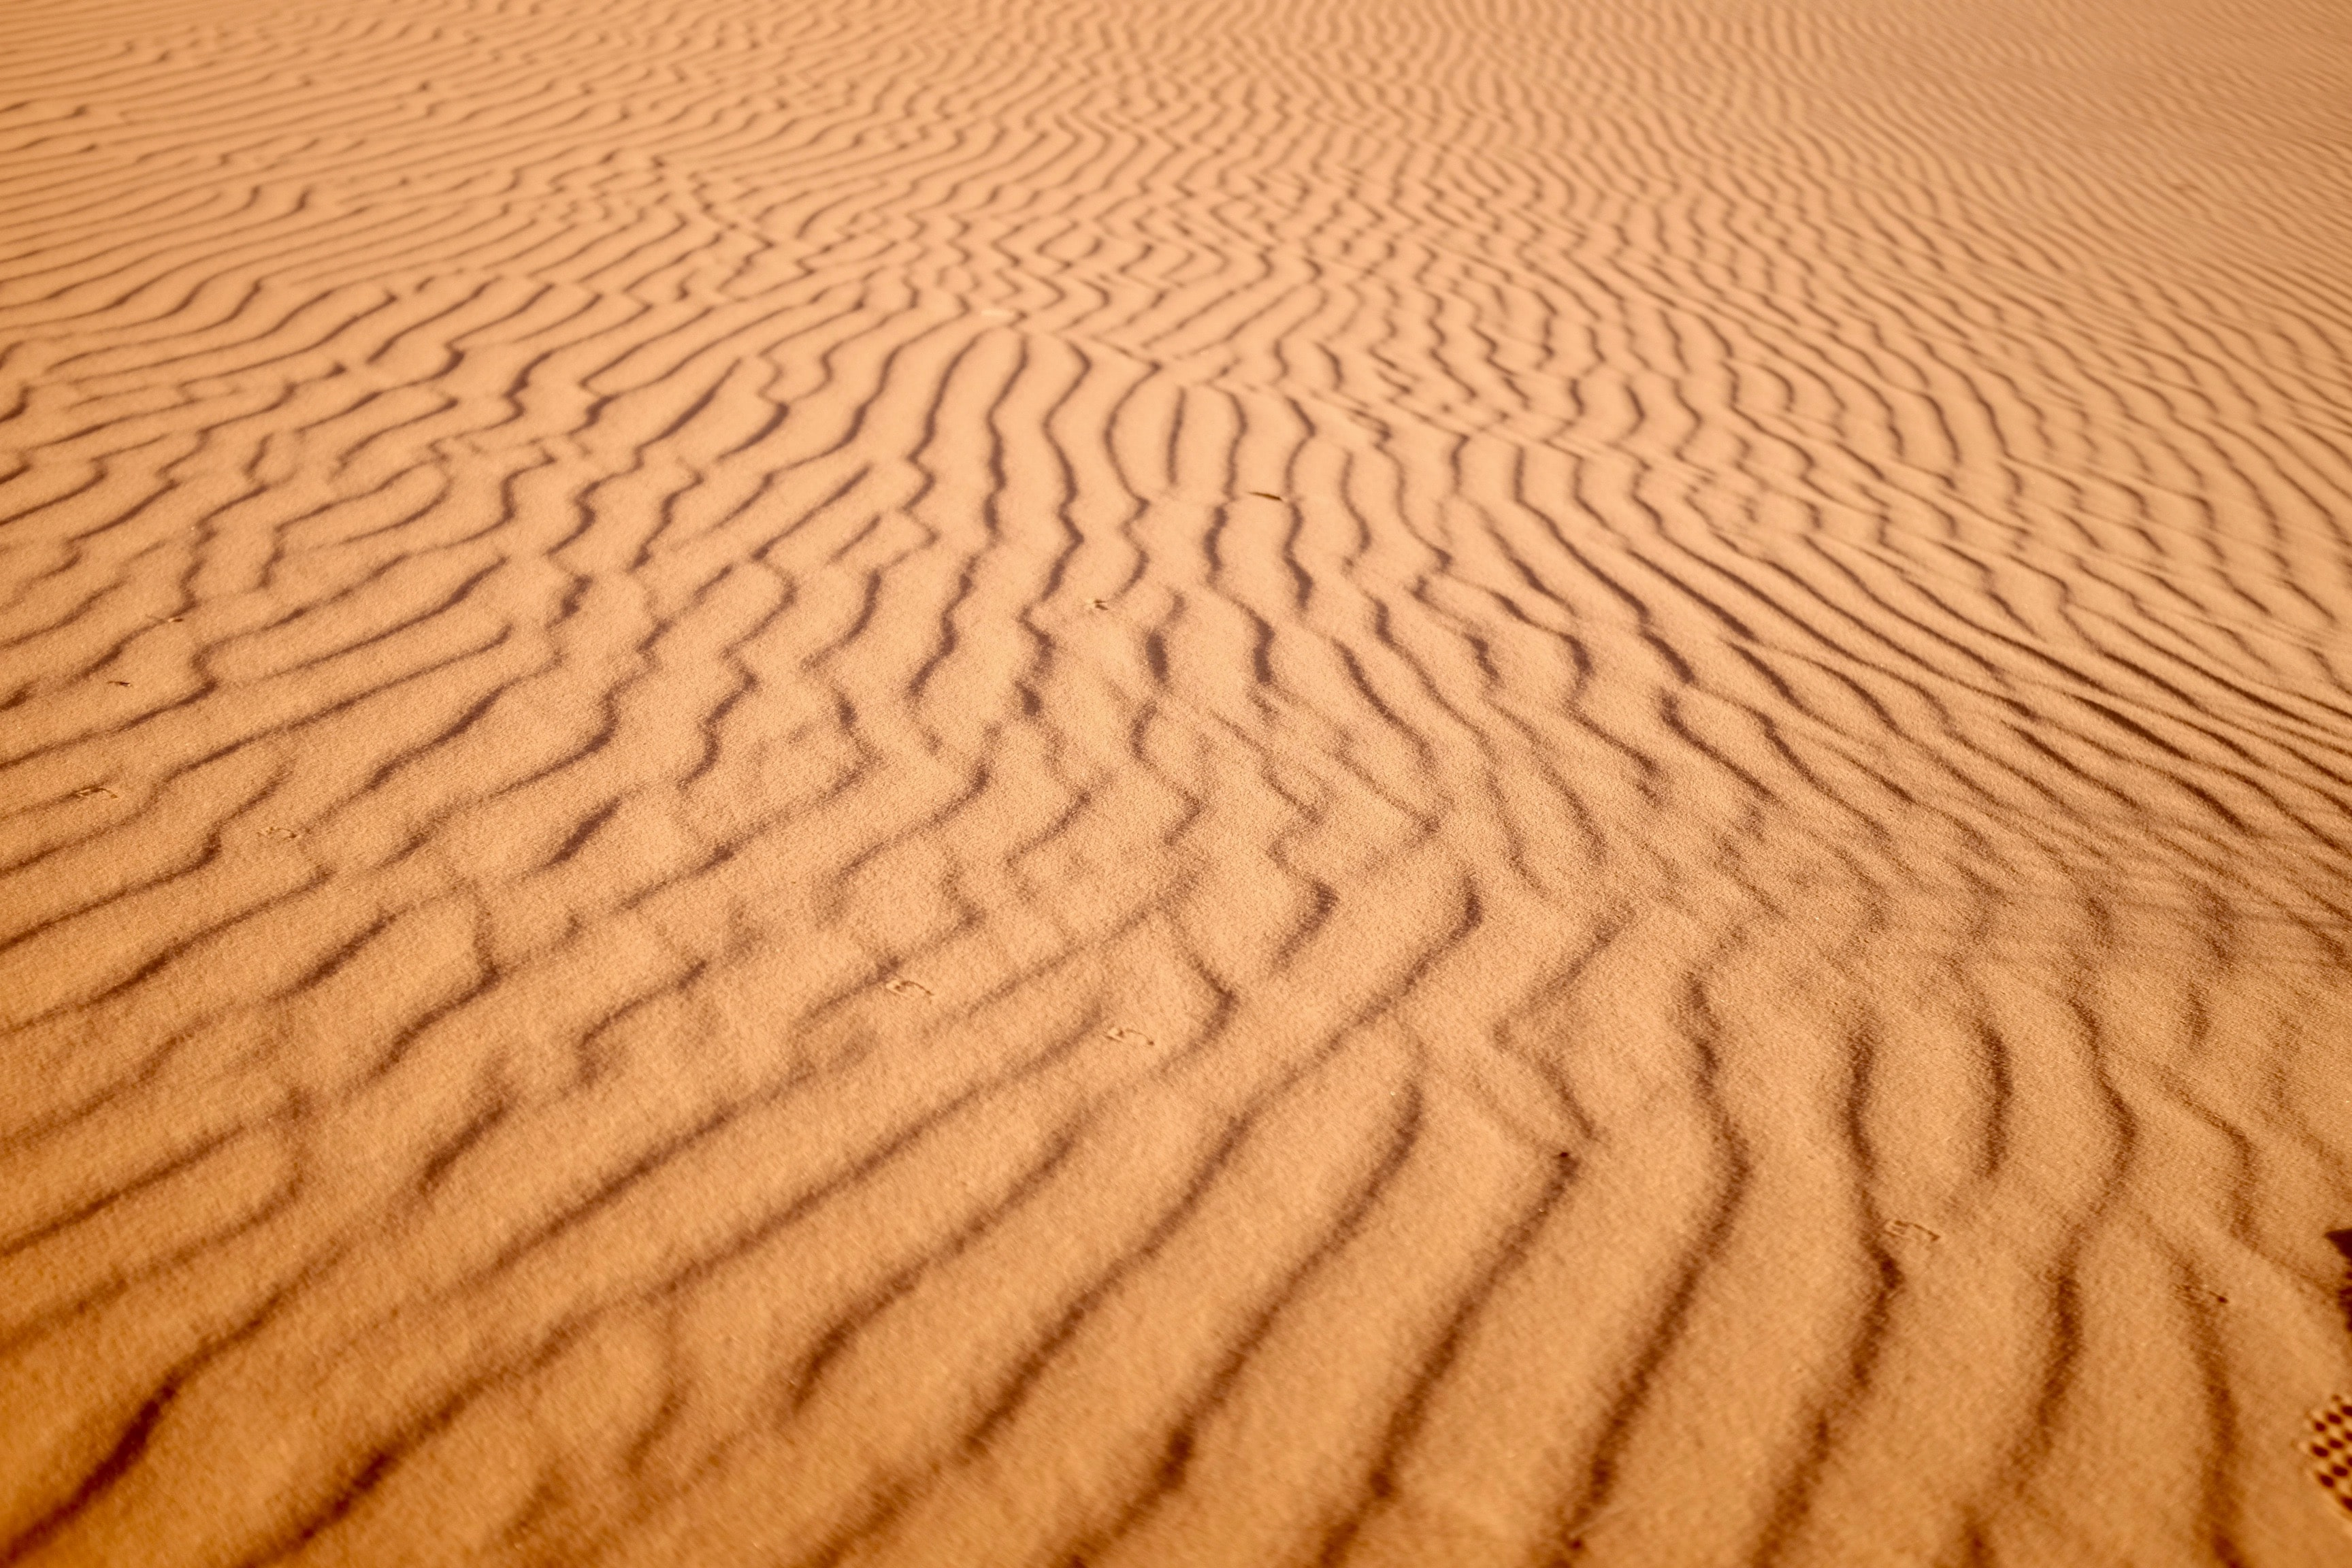 Wind forms ripple patterns in the sand of the Sahara Desert